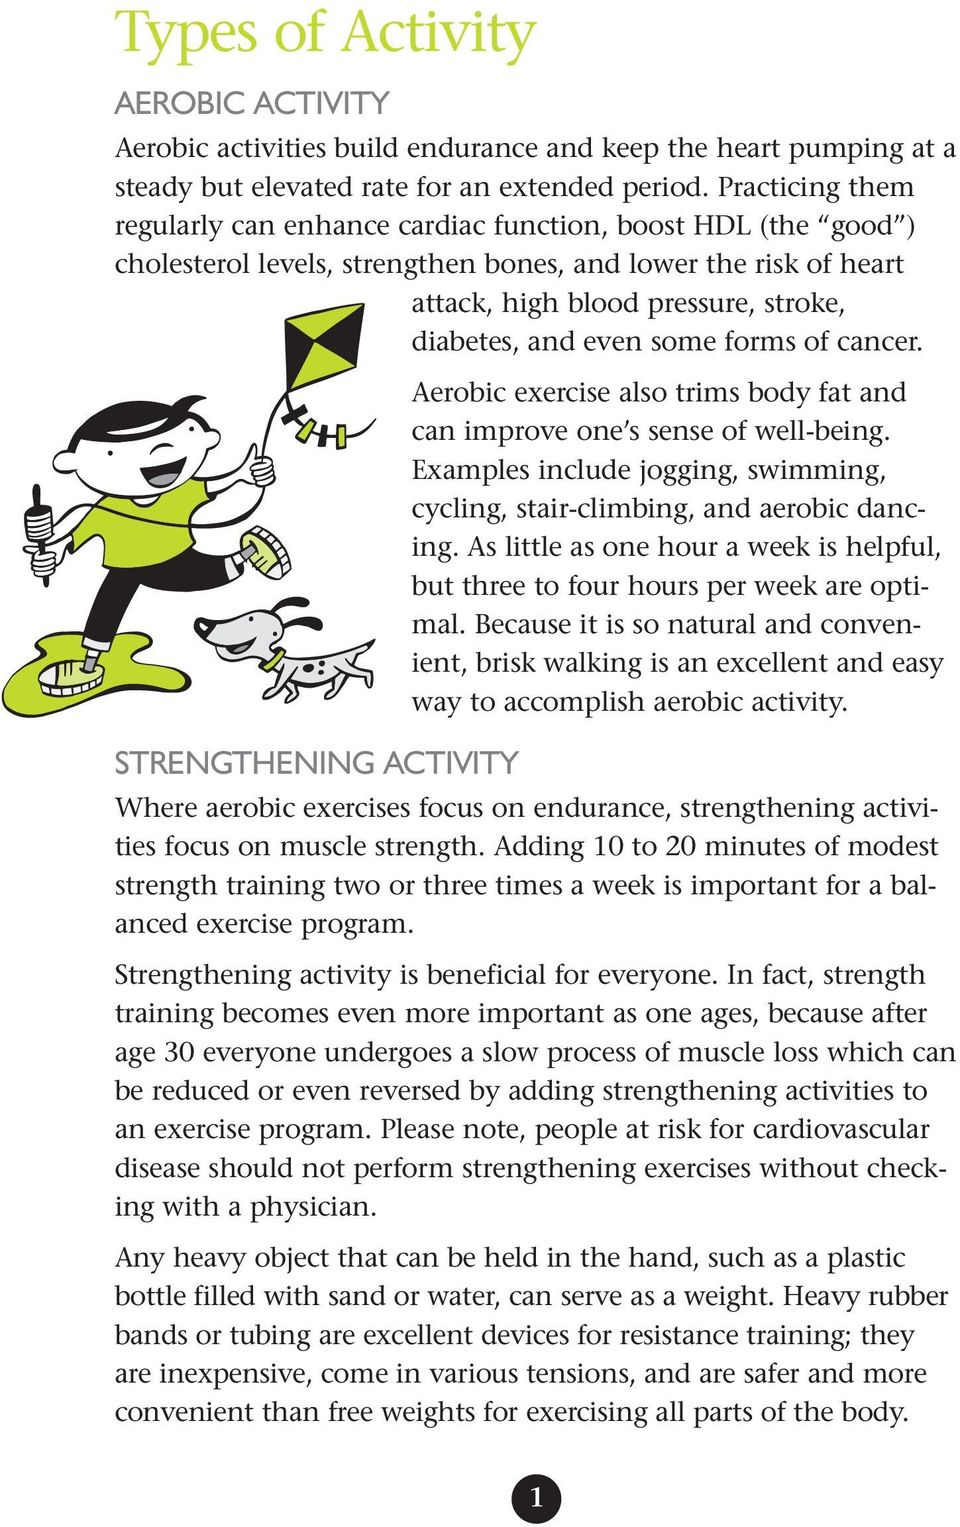 some forms of cancer. Aerobic exercise also trims body fat and can improve one s sense of well-being. Examples include jogging, swimming, cycling, stair-climbing, and aerobic dancing.